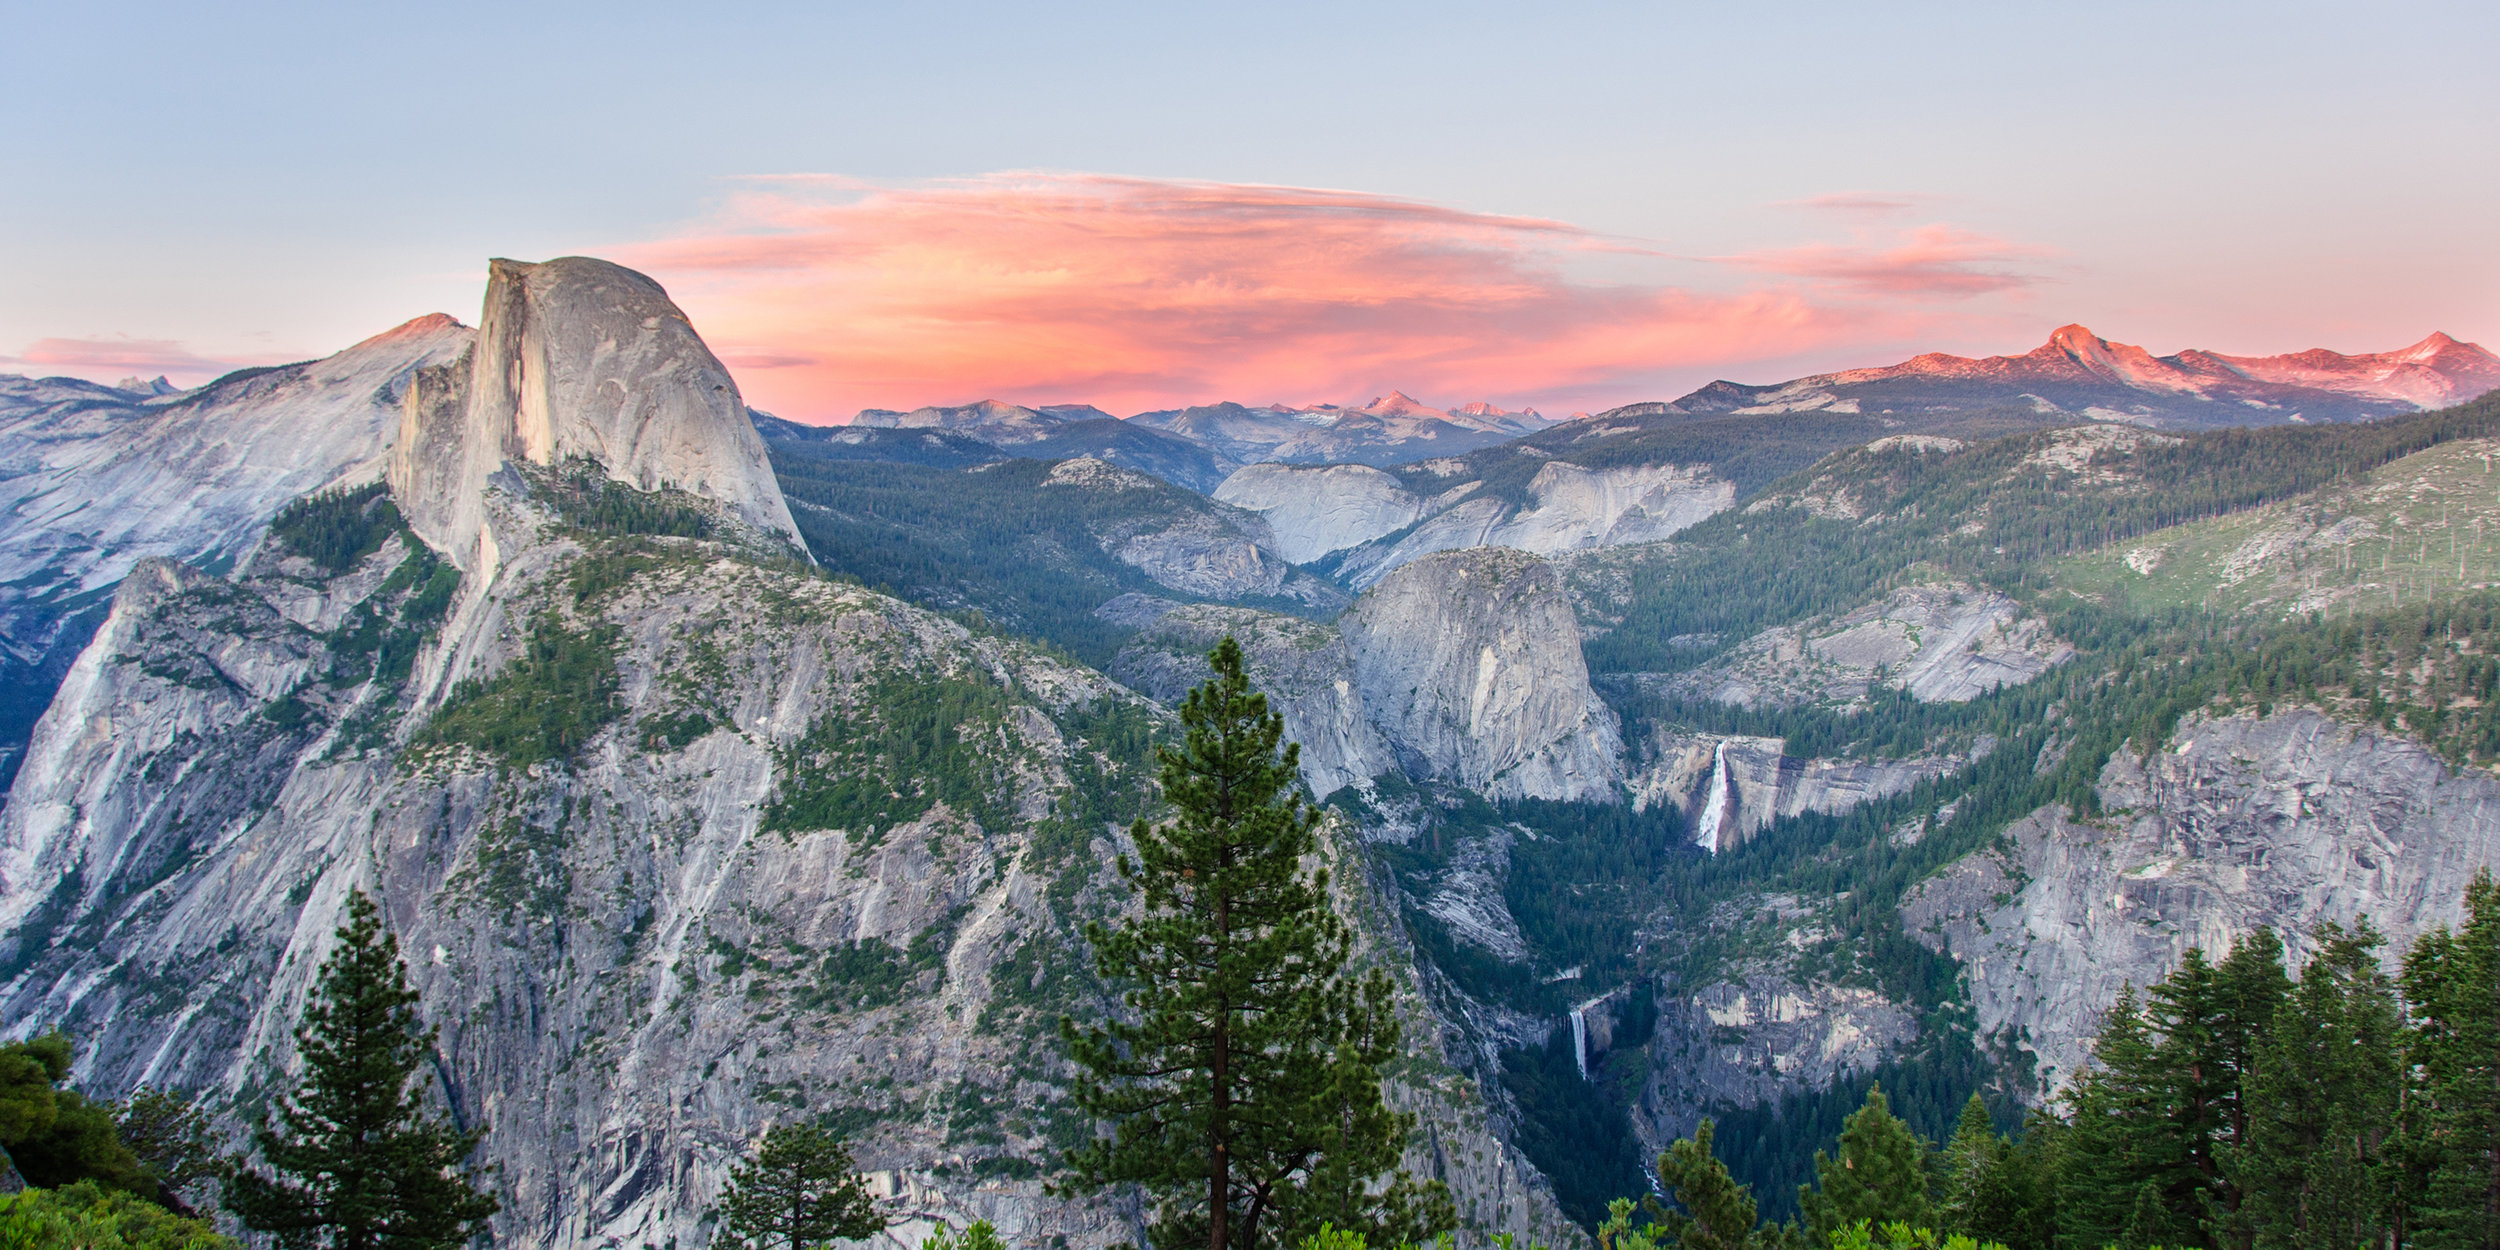 yosemite-glacier-point-sunset-national-park-summer-activities-things-to-do-via-magazine-shutterstock_552174034.jpg